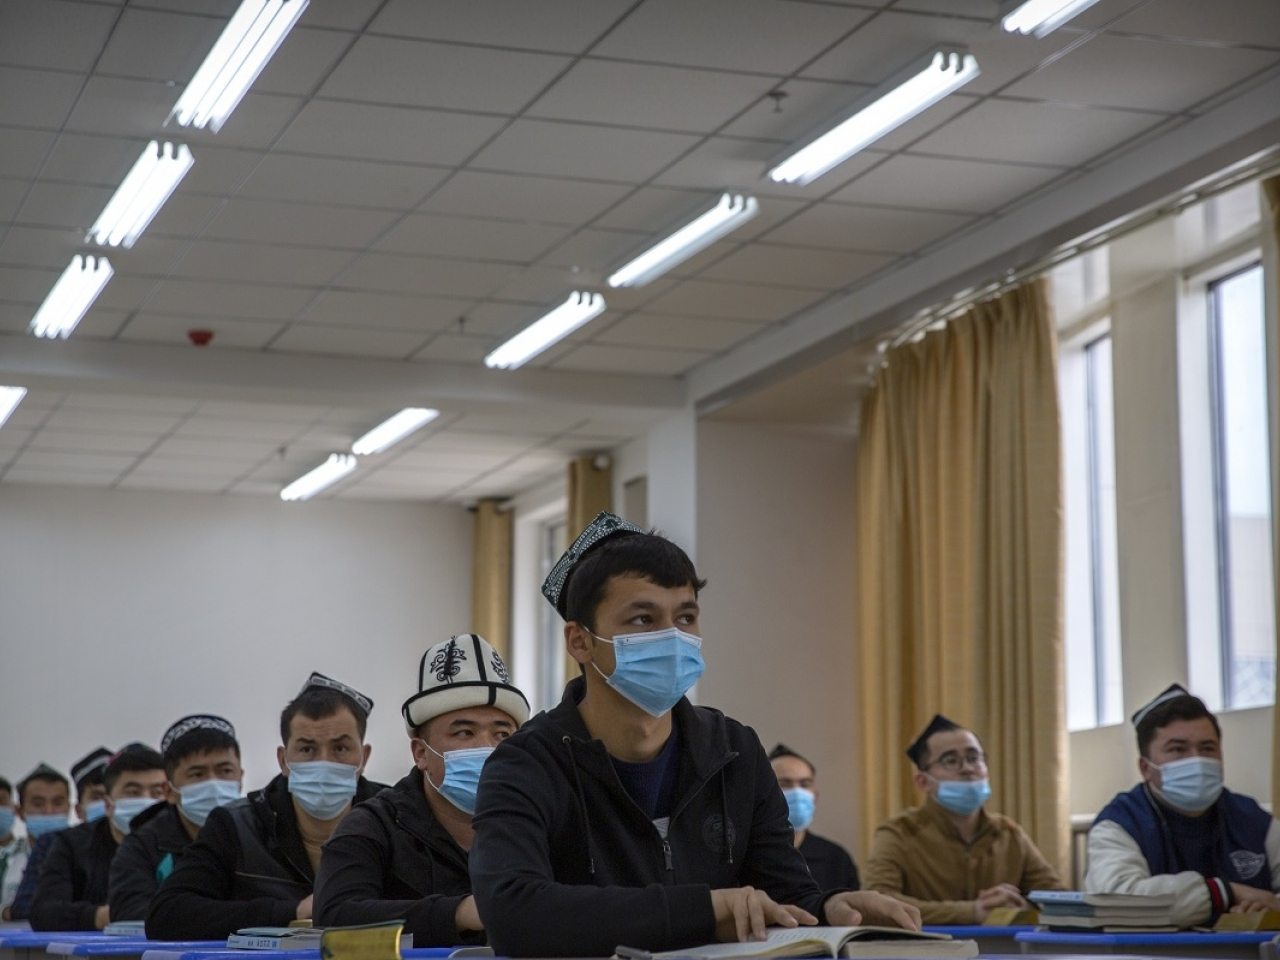 Uyghurs and other students attend a class at the Xinjiang Islamic Institute during a government organized visit for foreign journalists in Urumqi. Critics have accused Xinjiang authorities of torturing Uyghurs and other minorities. File photo: AP